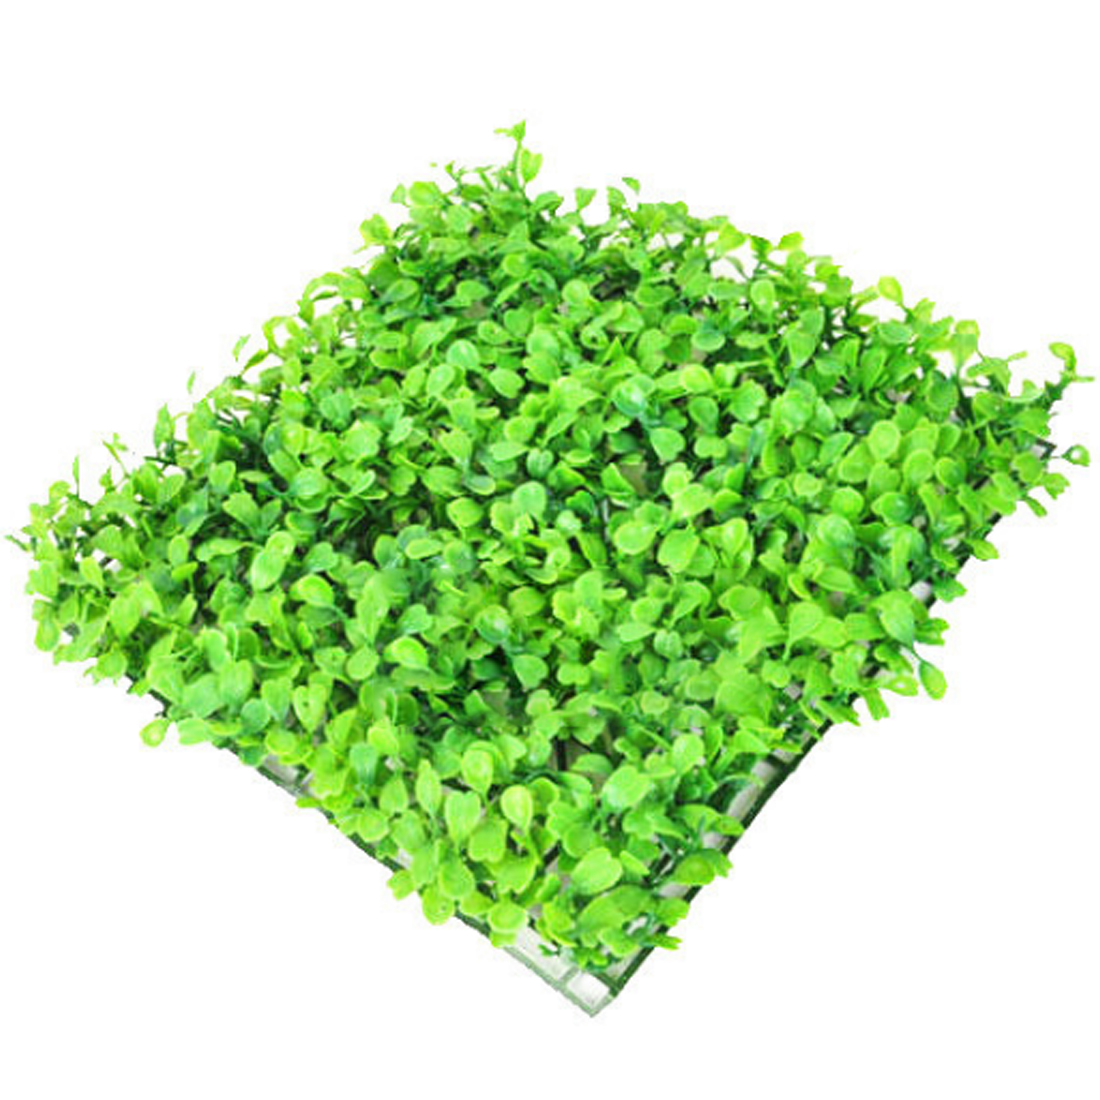 PETFORU Artificial Lawn Plastic Milan Lawn Landscaping for Fish Tank Decor - Green